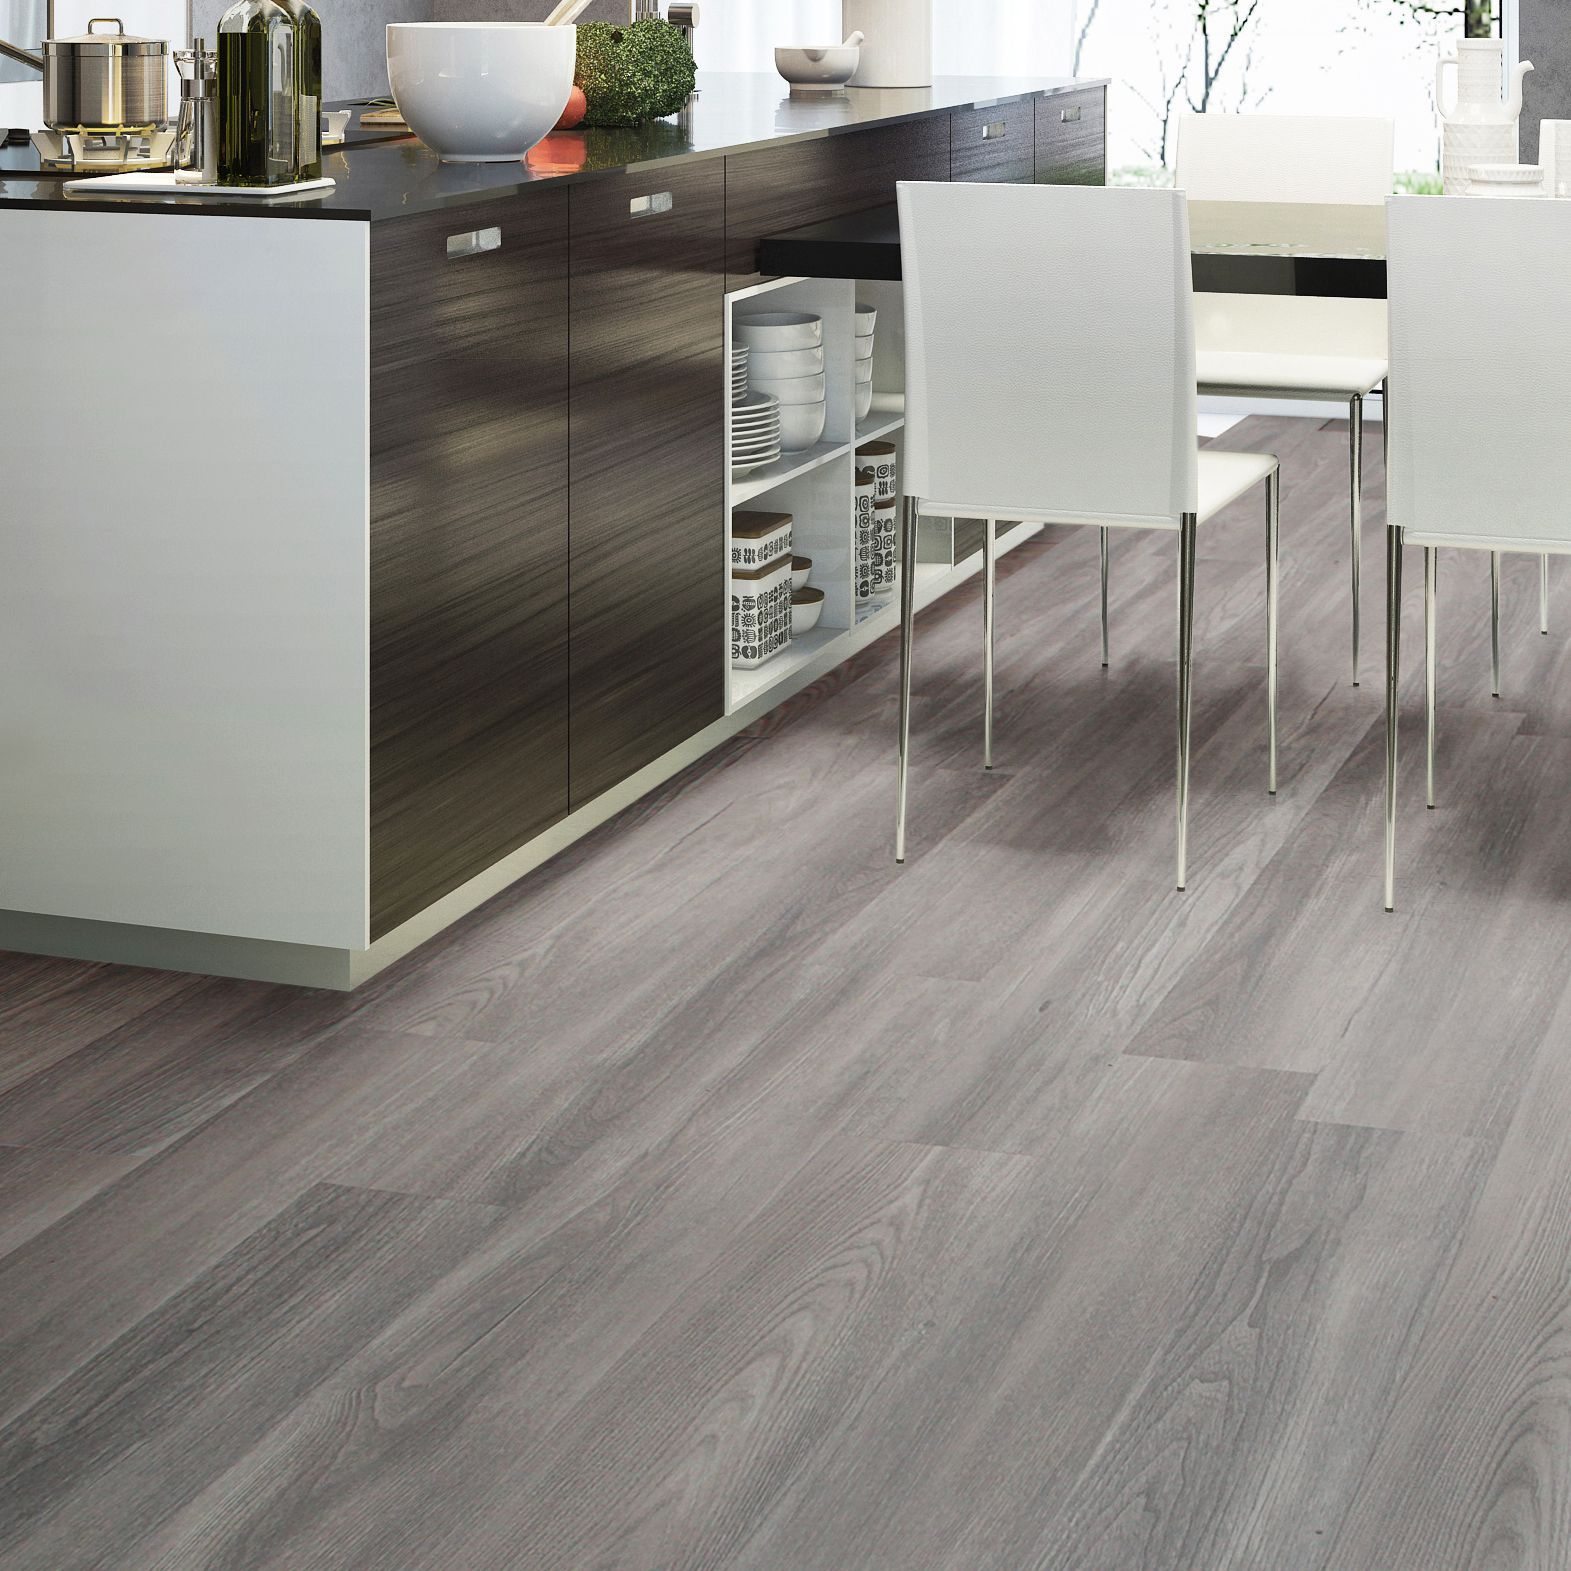 Colours grey natural oak effect waterproof luxury vinyl click grey natural oak effect waterproof luxury vinyl click flooring sample bq for all your home and garden supplies and advice on all the latest diy trends dailygadgetfo Choice Image